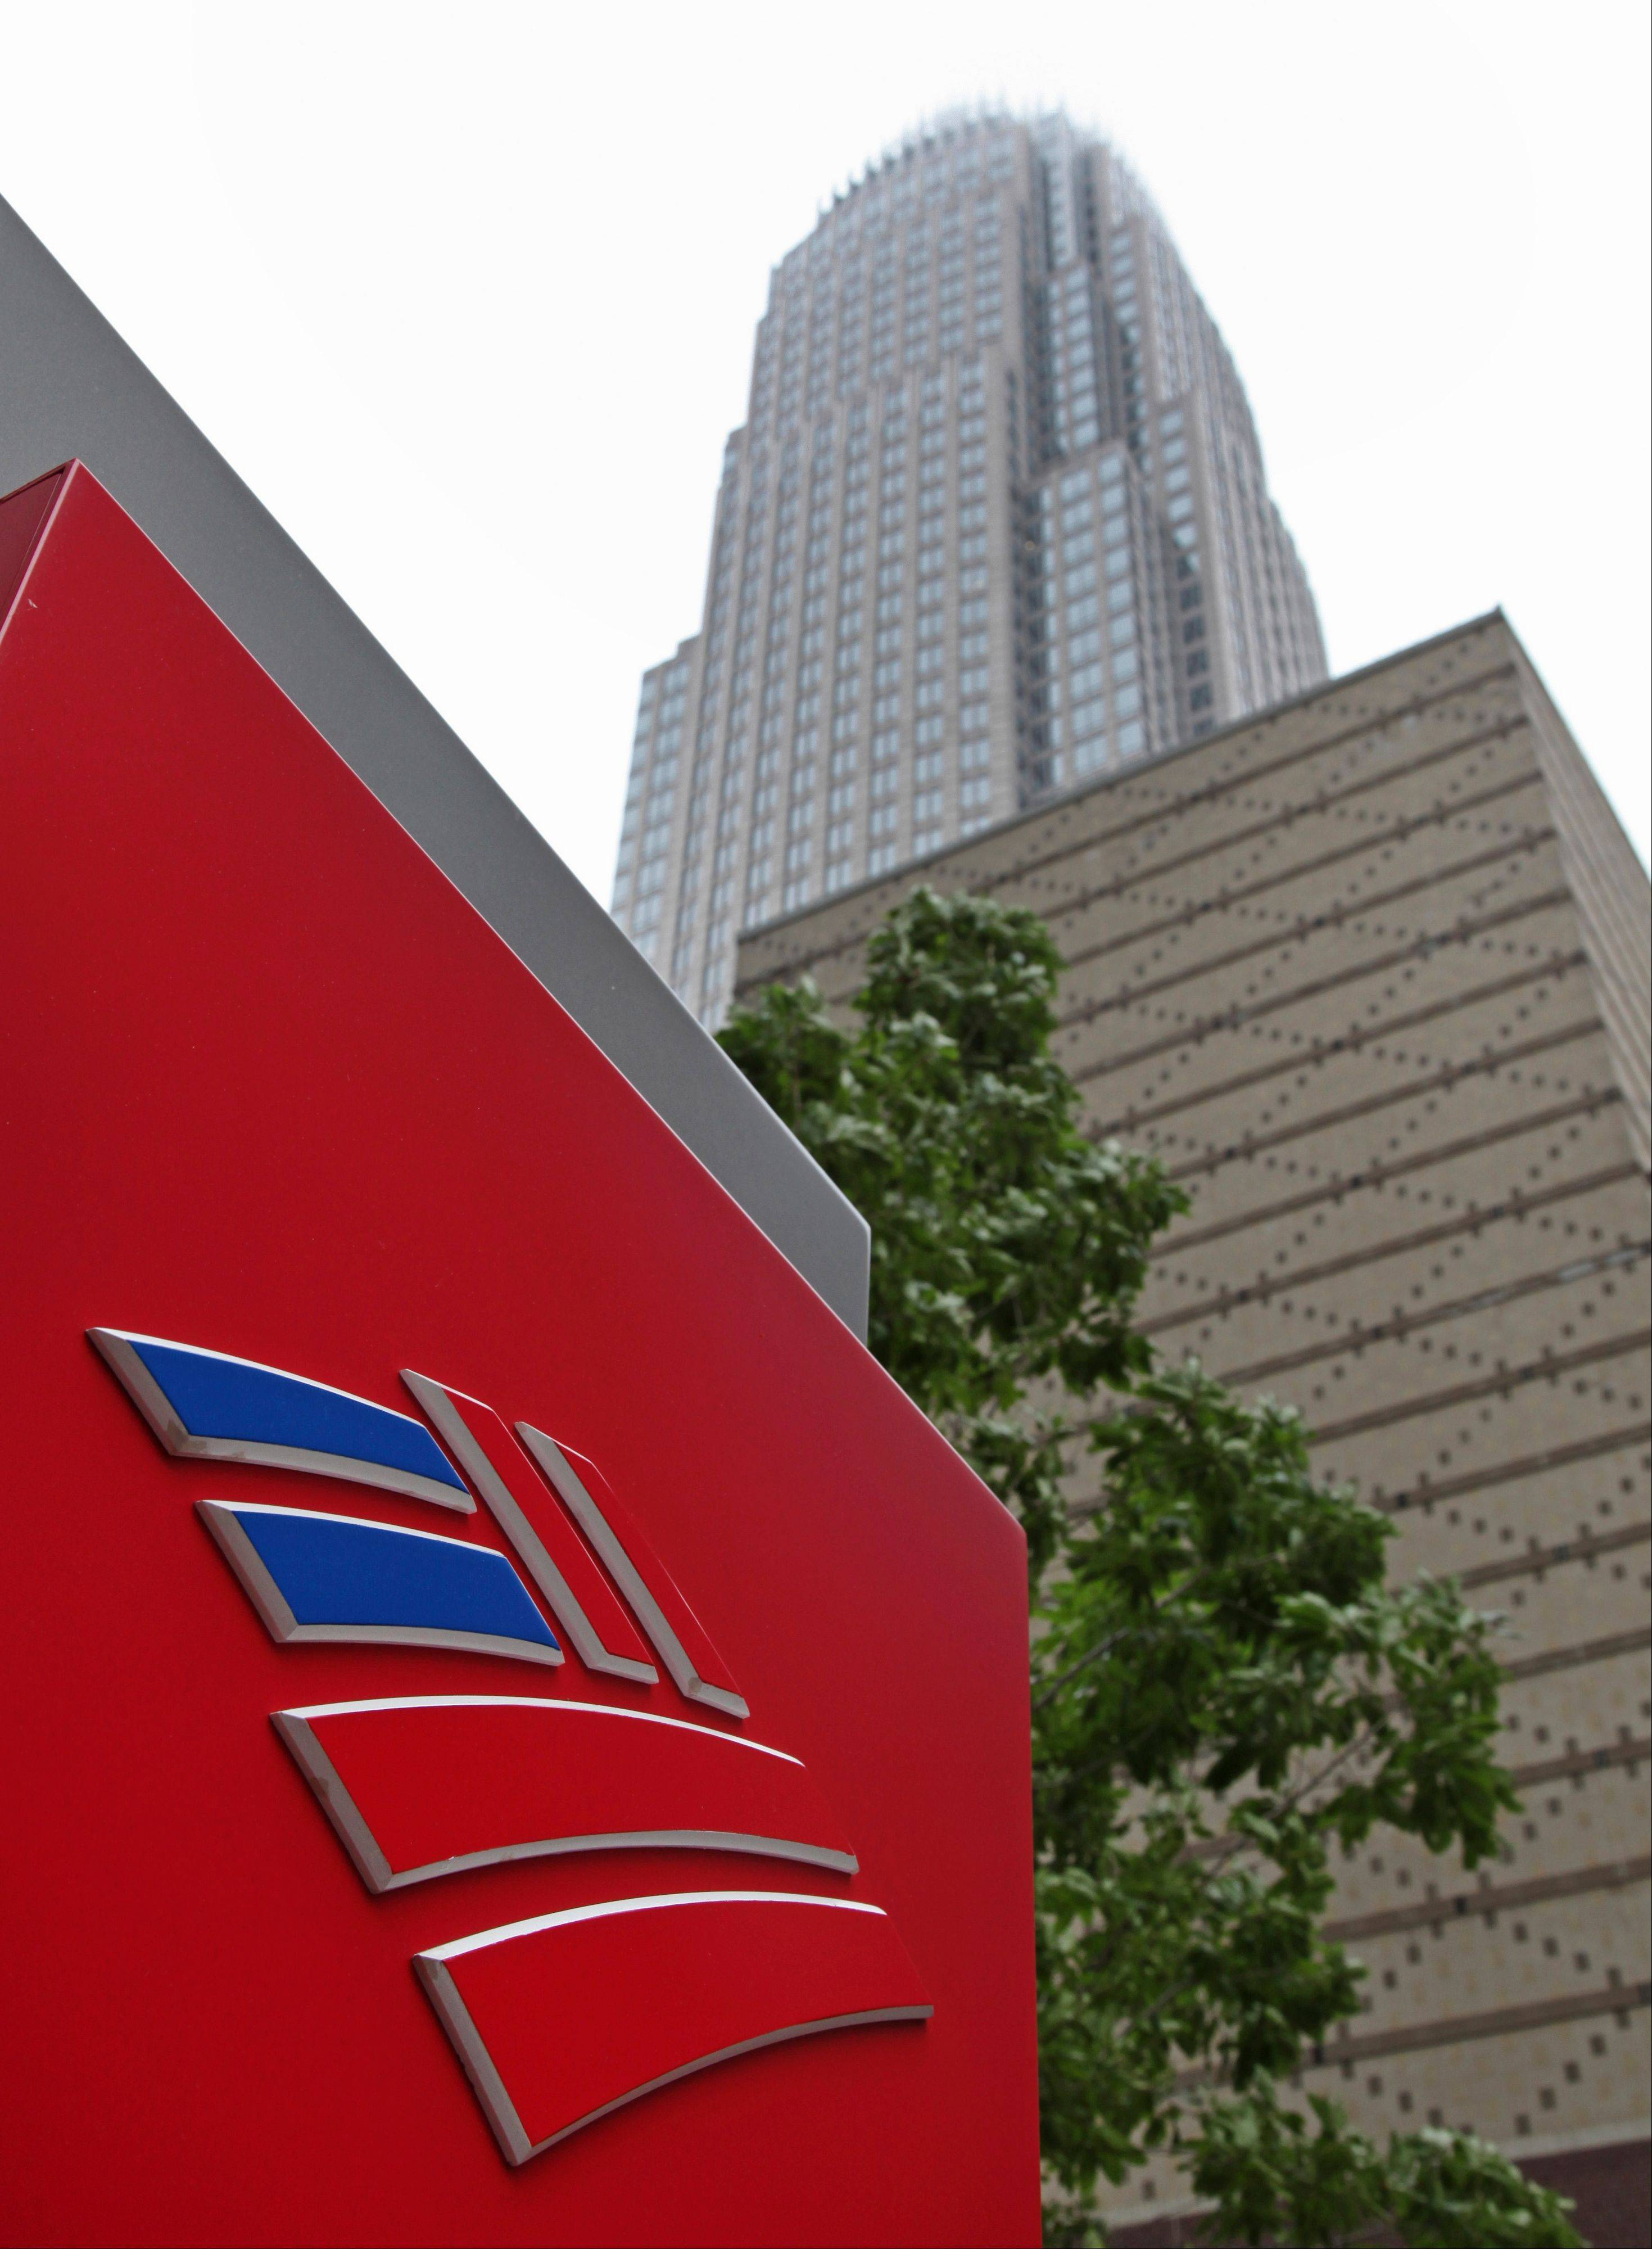 Associated Press/April 19, 2012Bank of America's corporate headquarters in Charlotte, N.C. Moody's Investors Service lowered the credit ratings on some of the world's biggest banks, including Bank of America, but it had little effect on opening stock prices Friday.